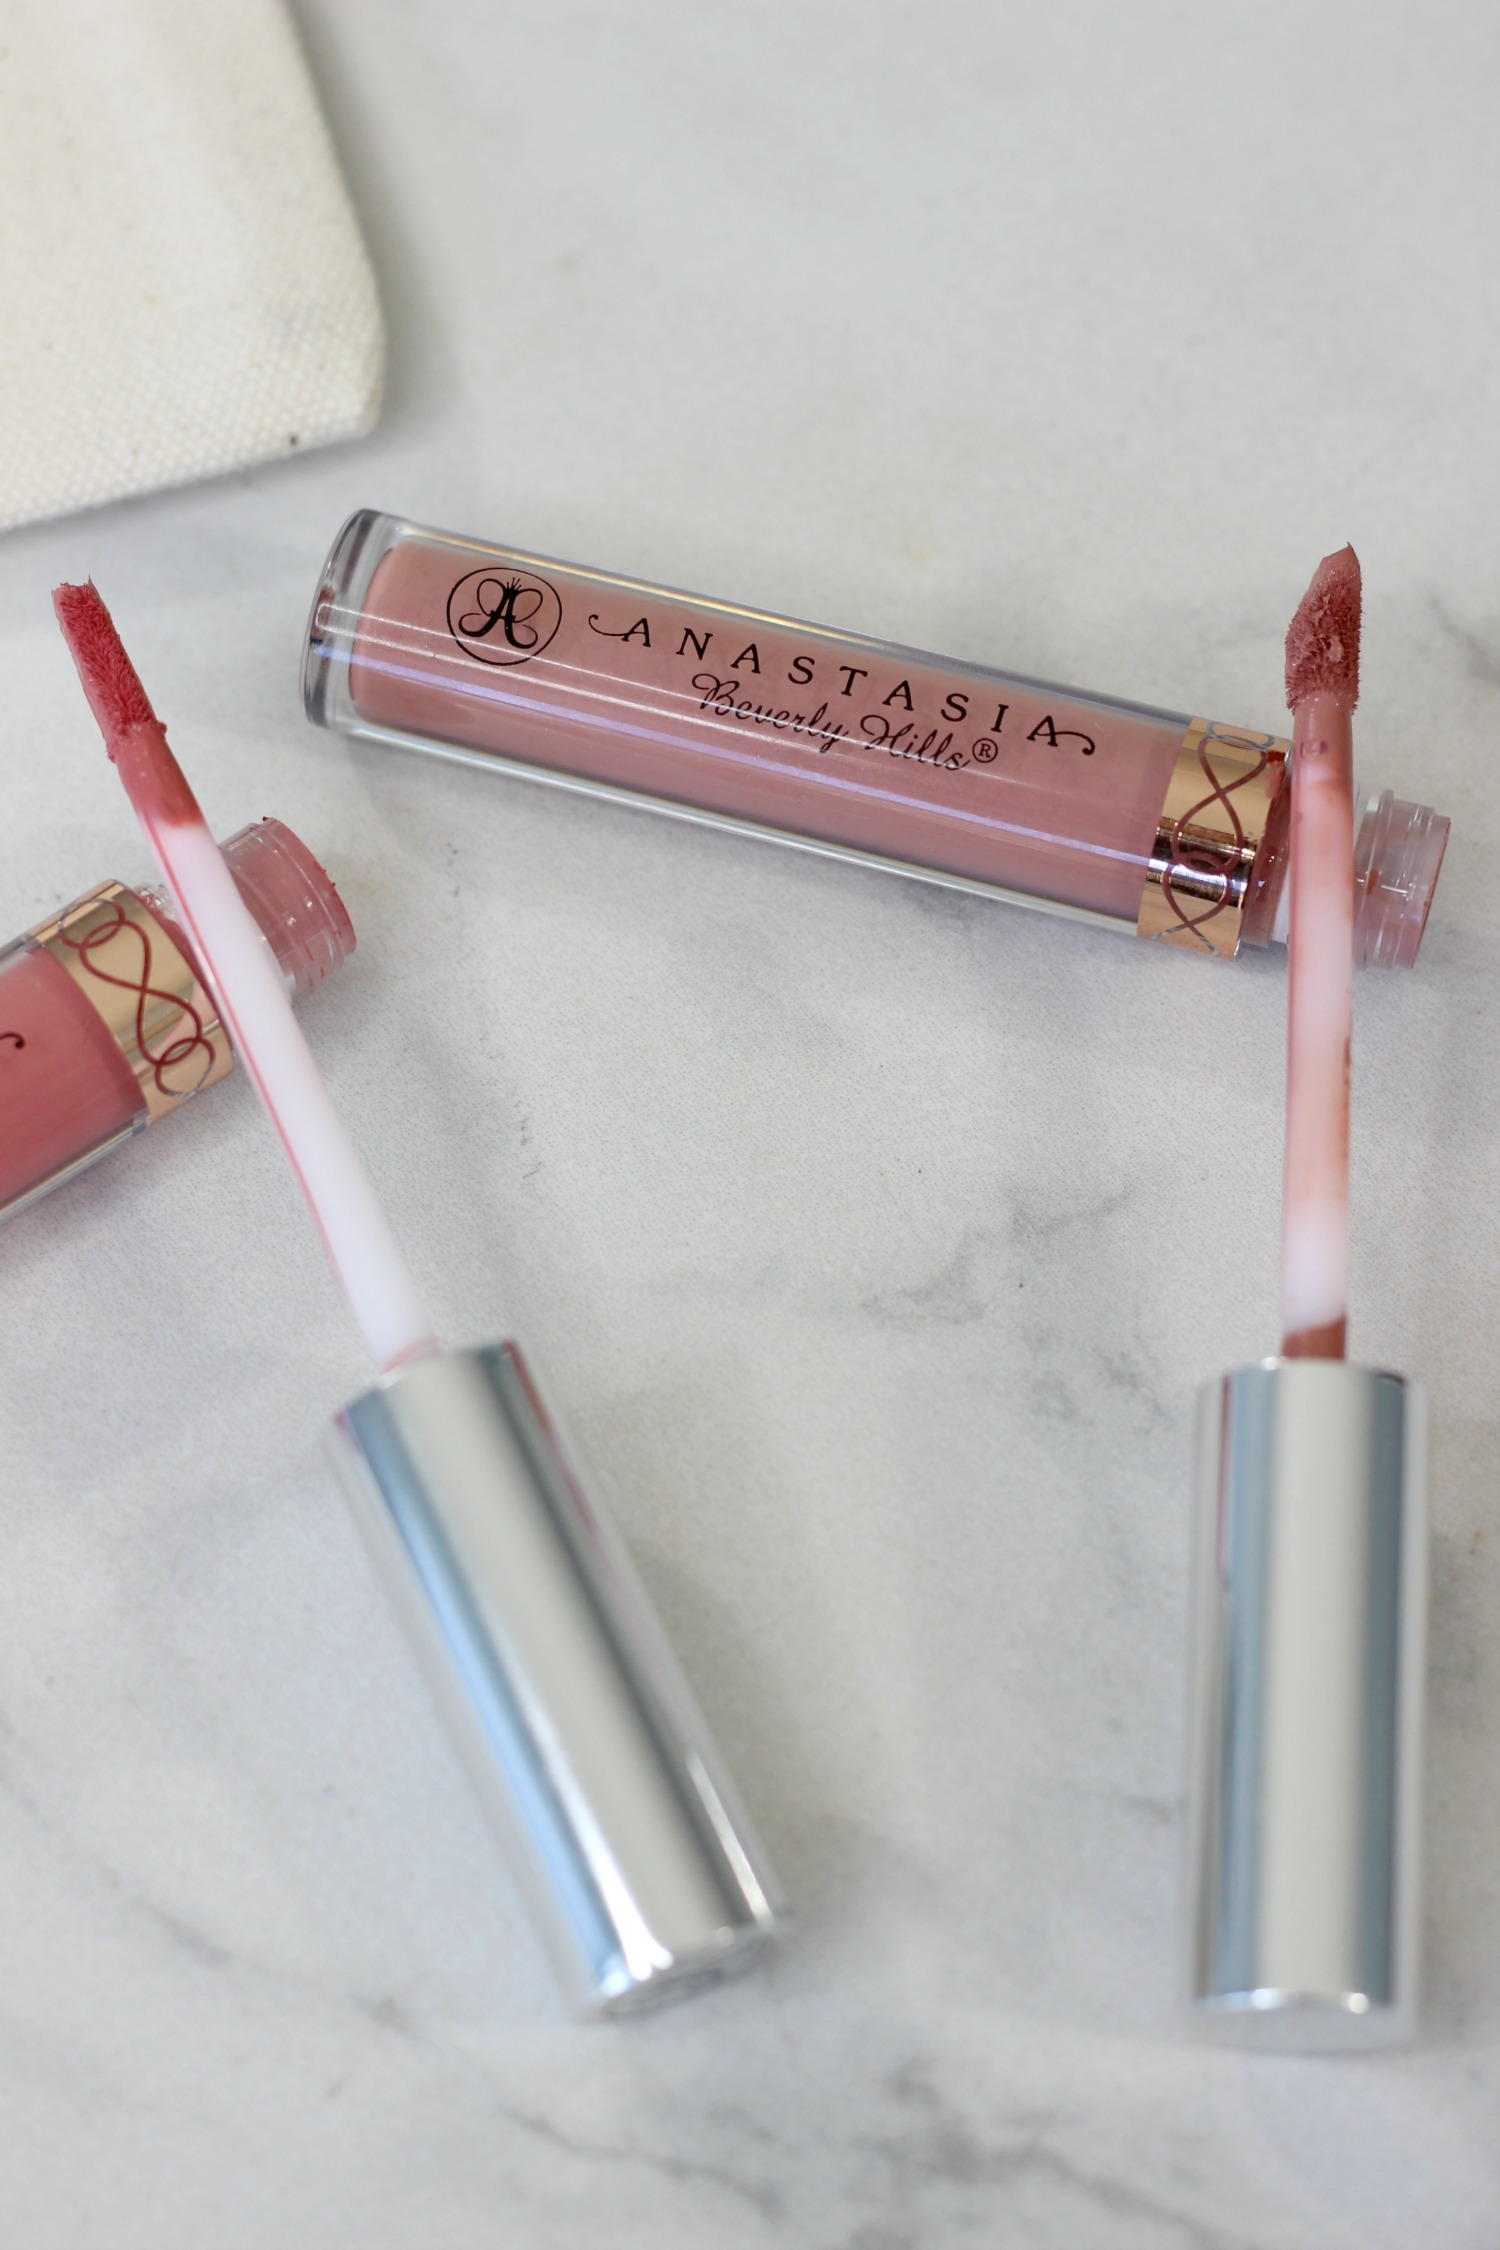 ABH Liquid Lipstick Different Applicators | Anastasia Beverly Hills Liquid Lipstick Review